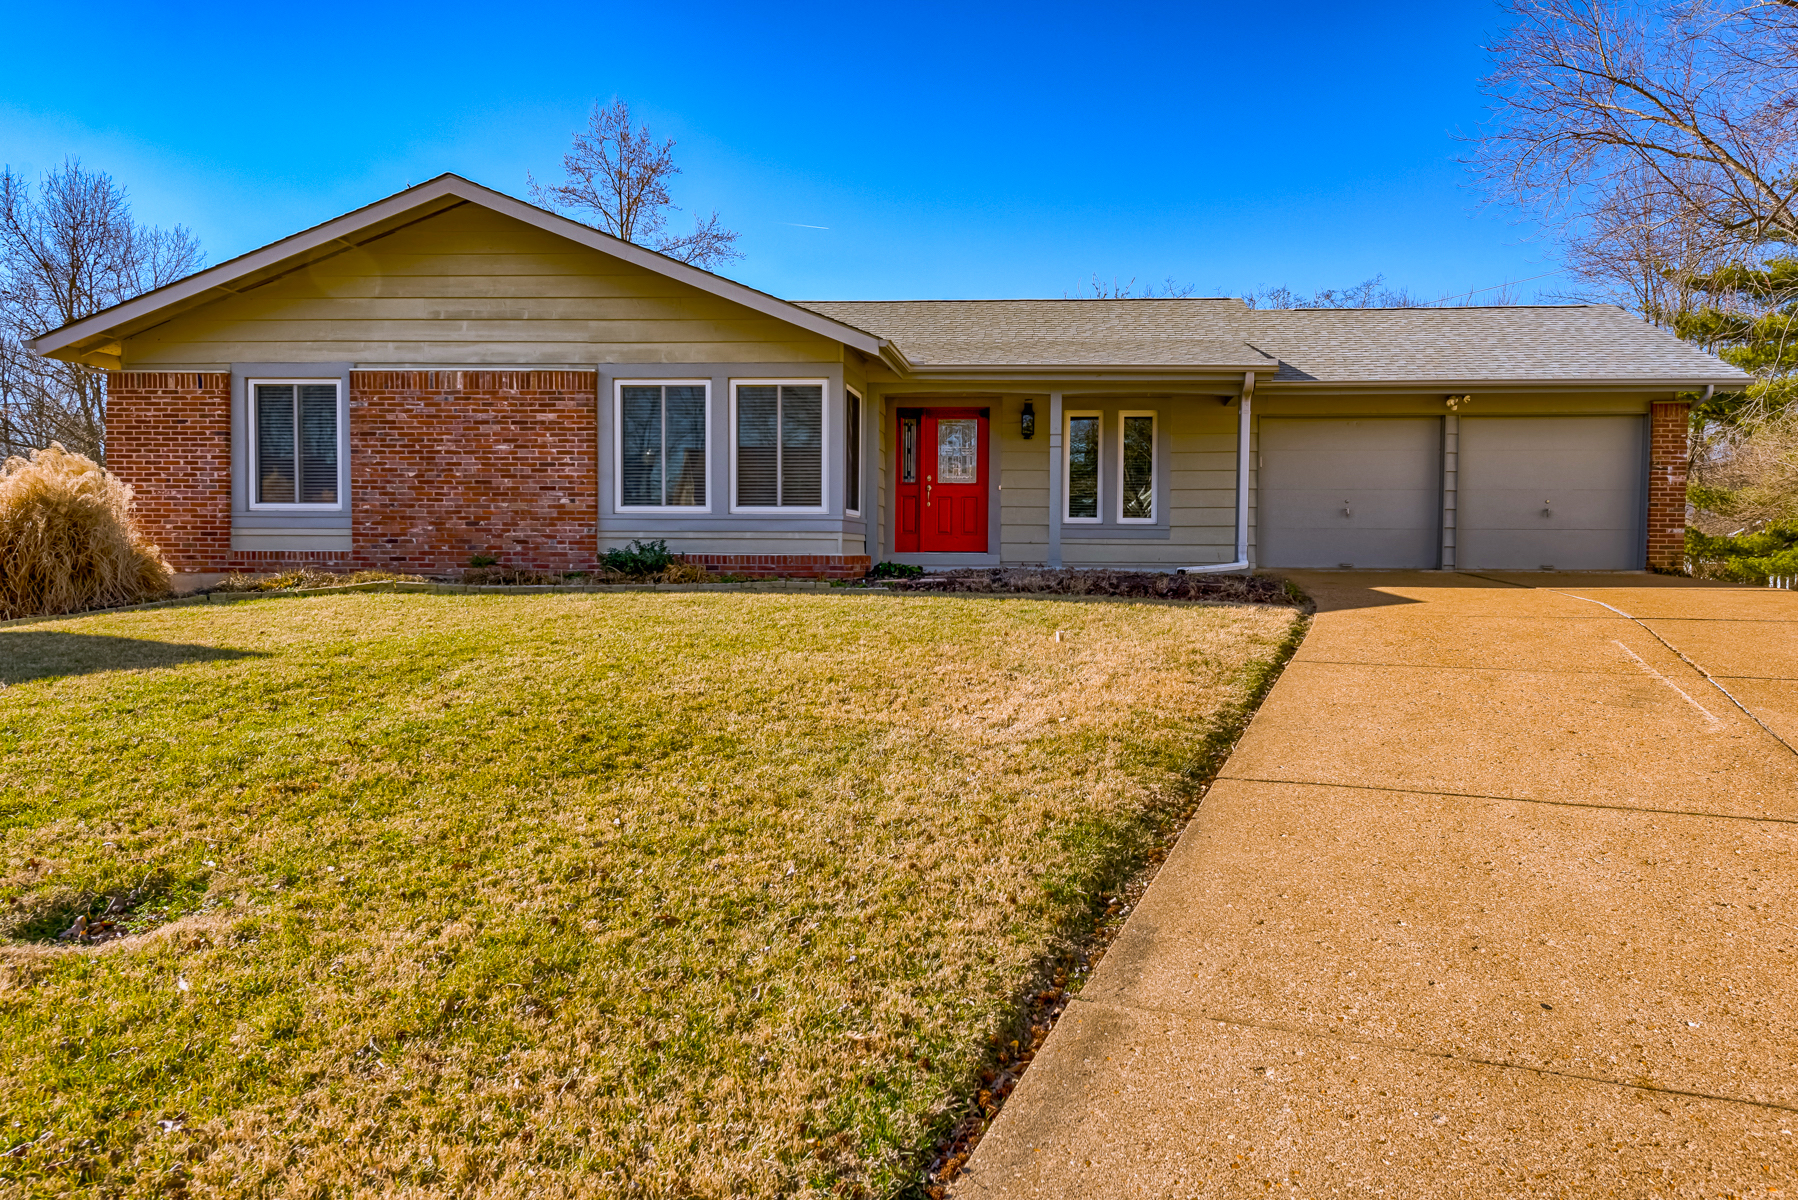 Single Family Home for Sale at Courtleigh Lane 2177 Courtleight Lane Chesterfield, Missouri, 63017 United States